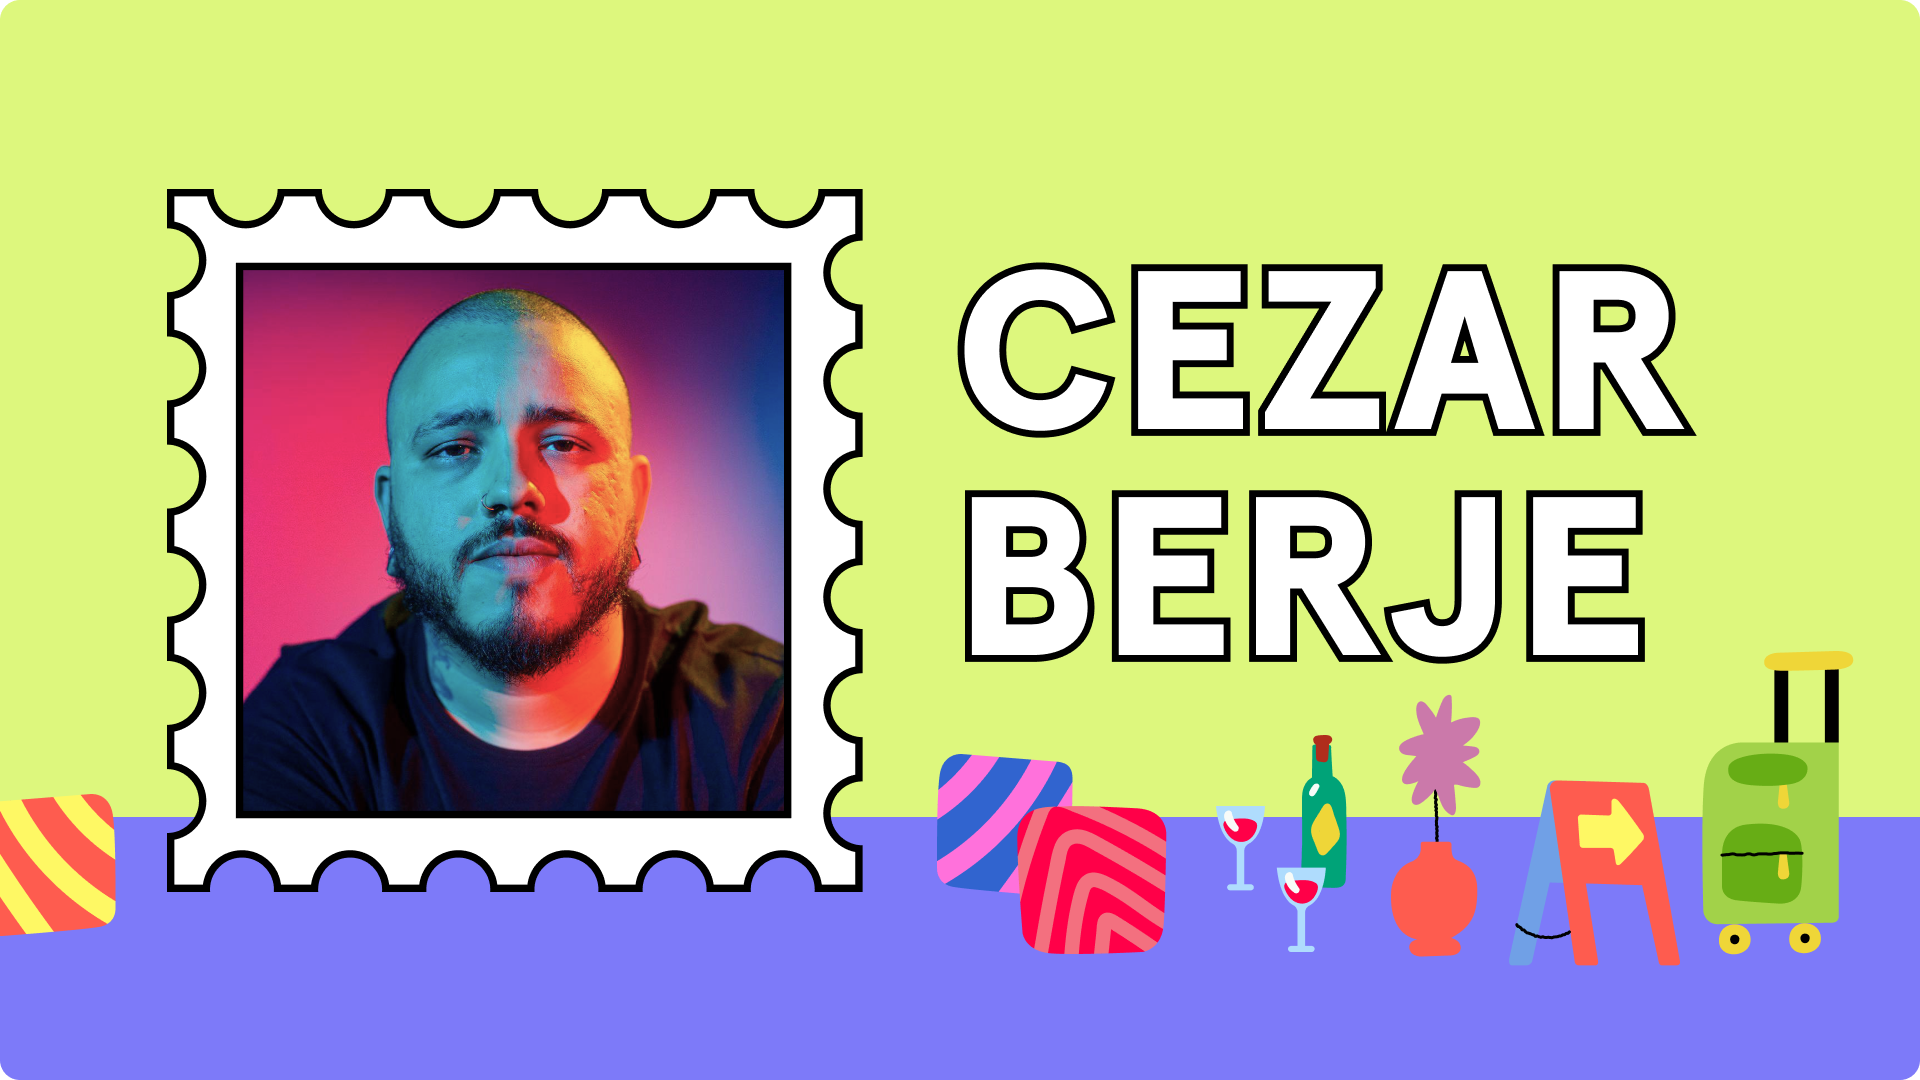 Banner of Cezar Berje and his doodles from the collection brazuca